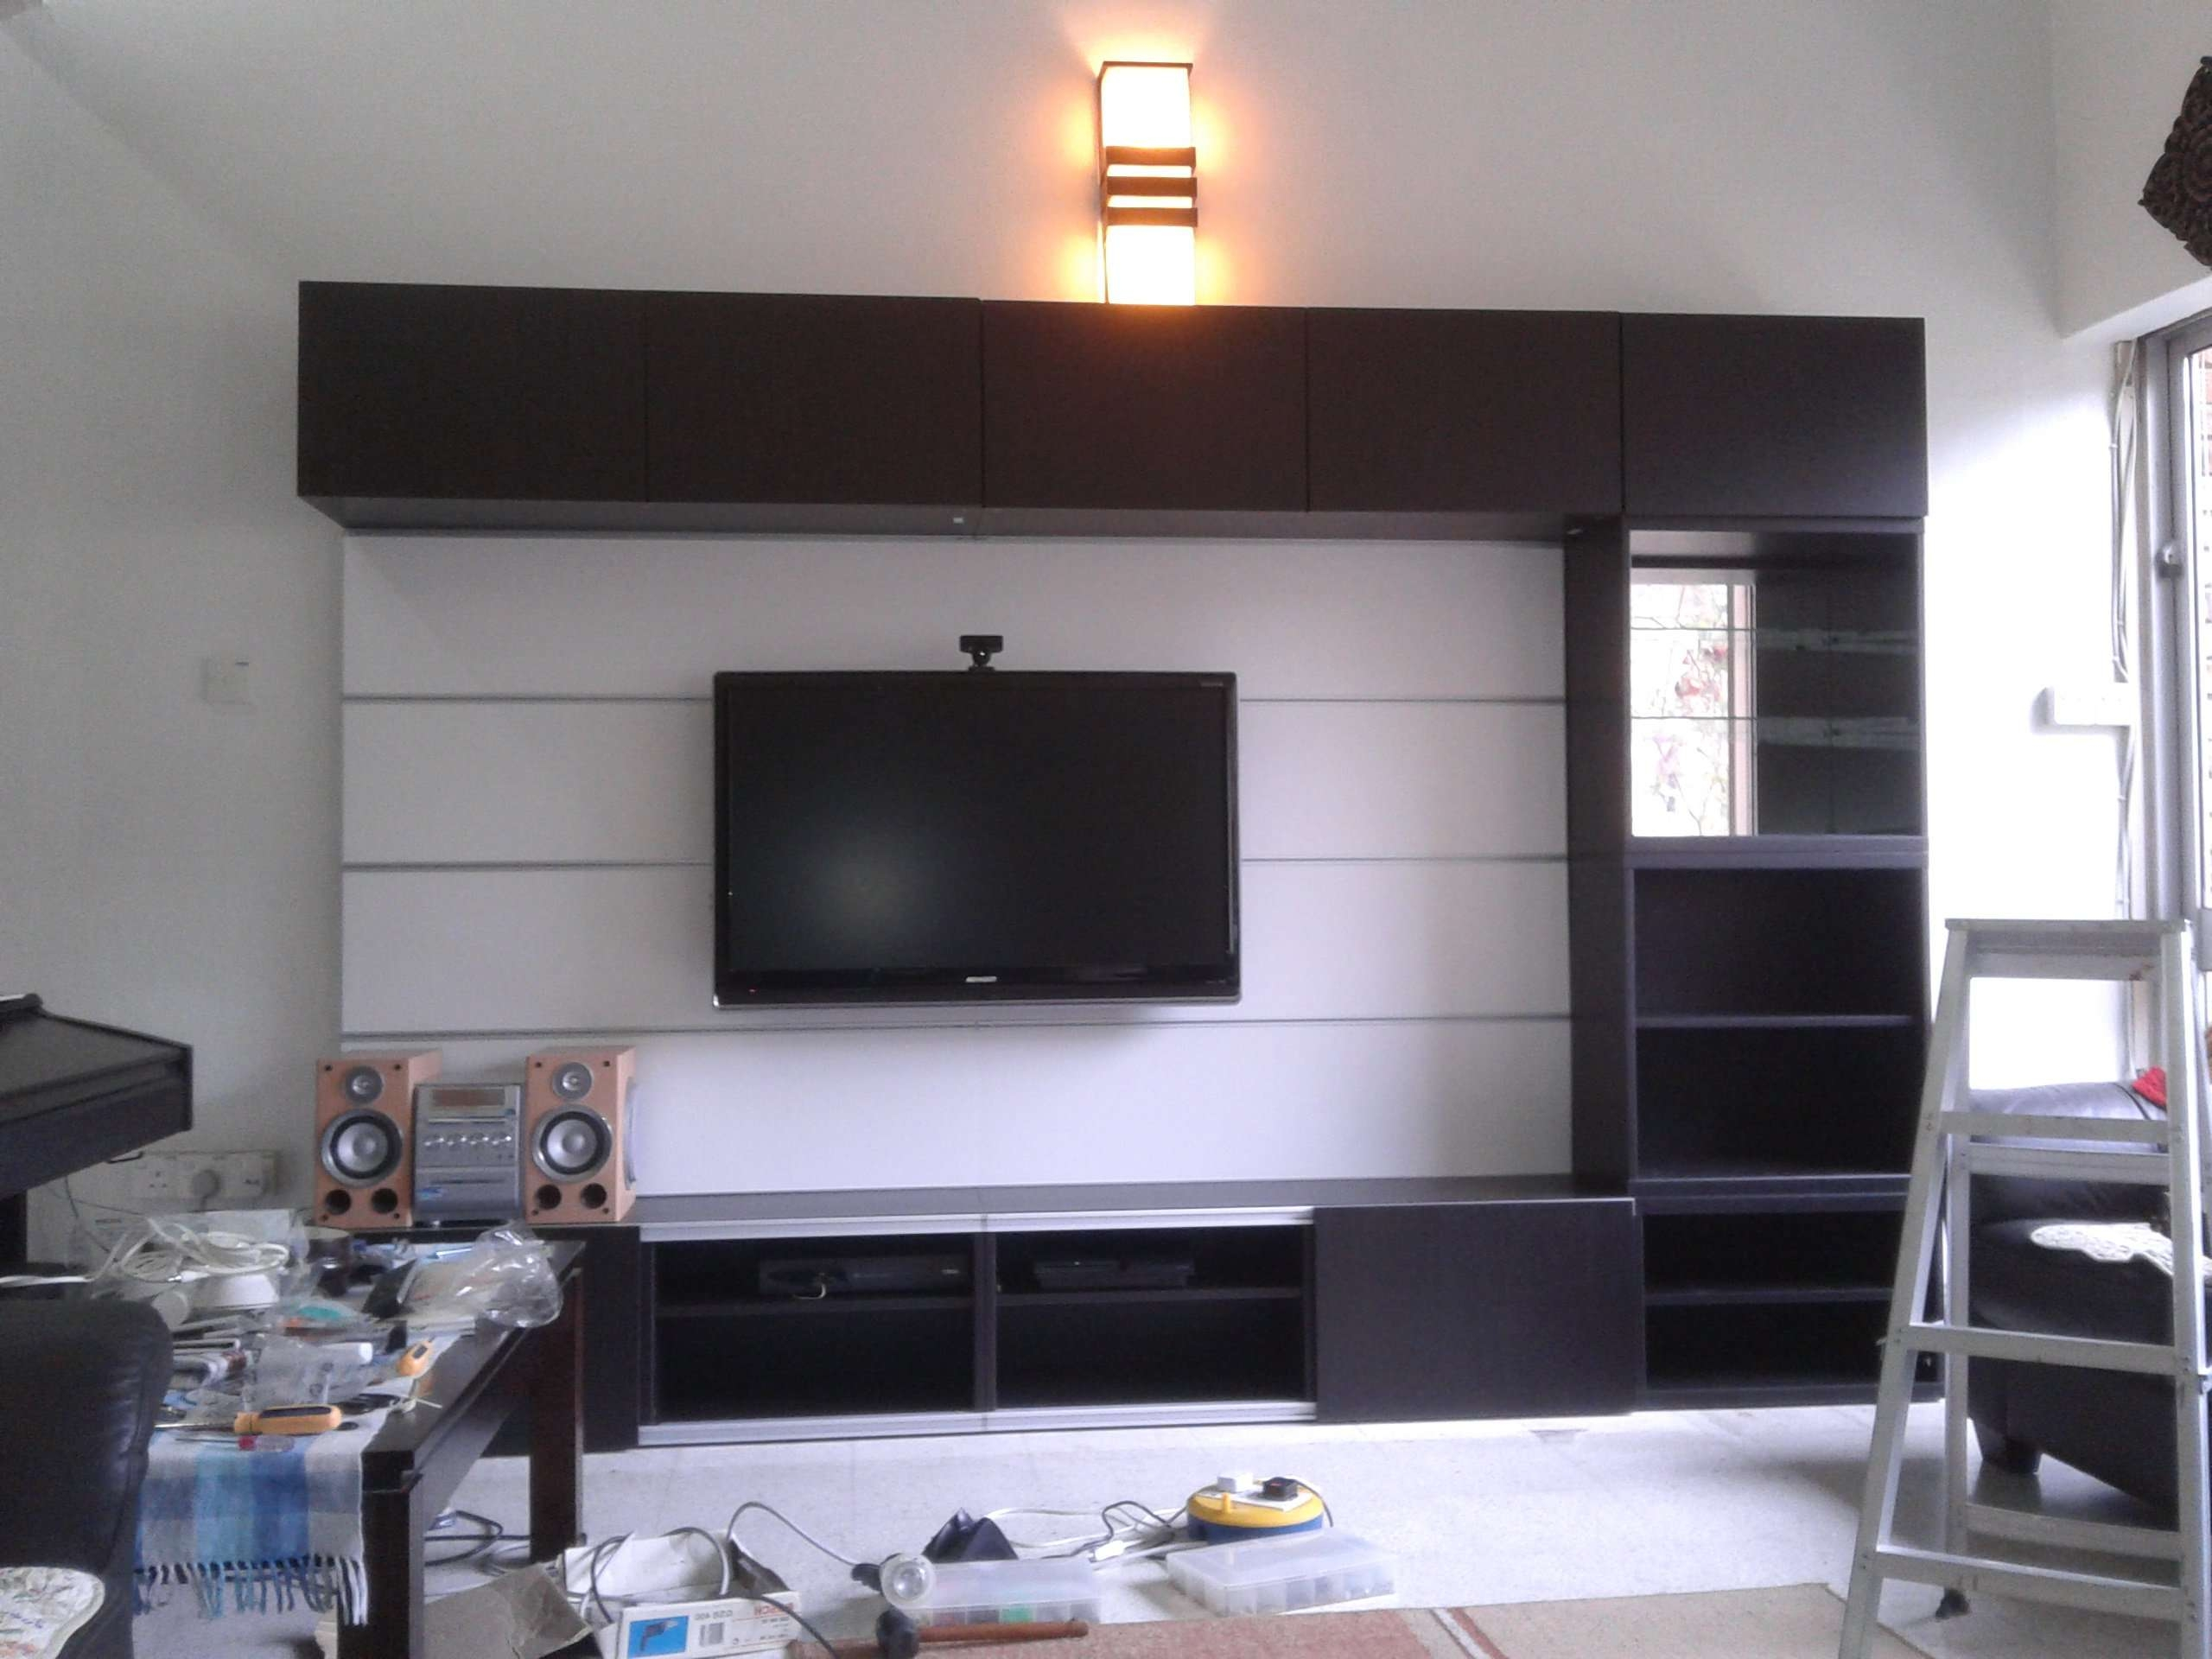 Ikea Besta Tv Stand With Black Wooden Cabinet And Selves Also Regarding Stylish Tv Cabinets (View 9 of 20)